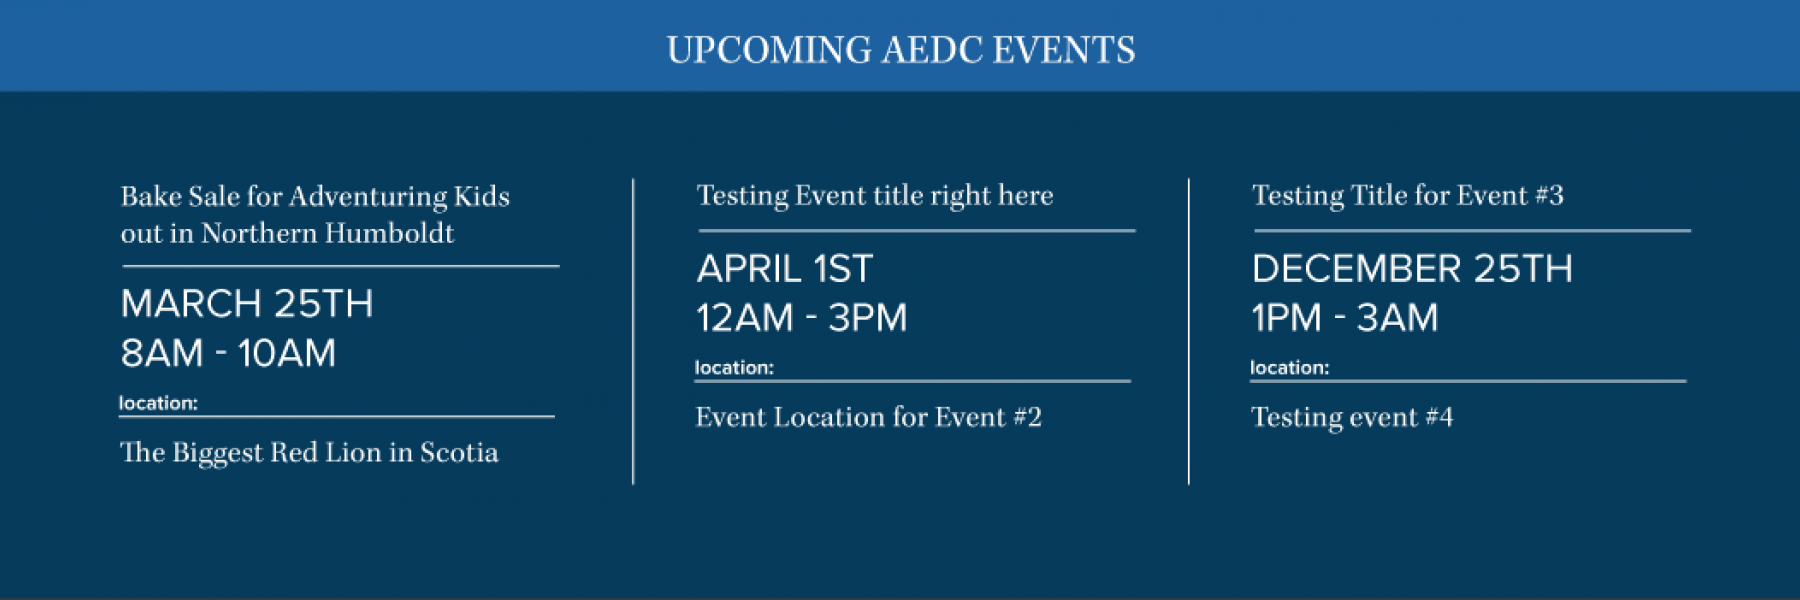 Draft #4 of AEDC's website homepage that features the event's display